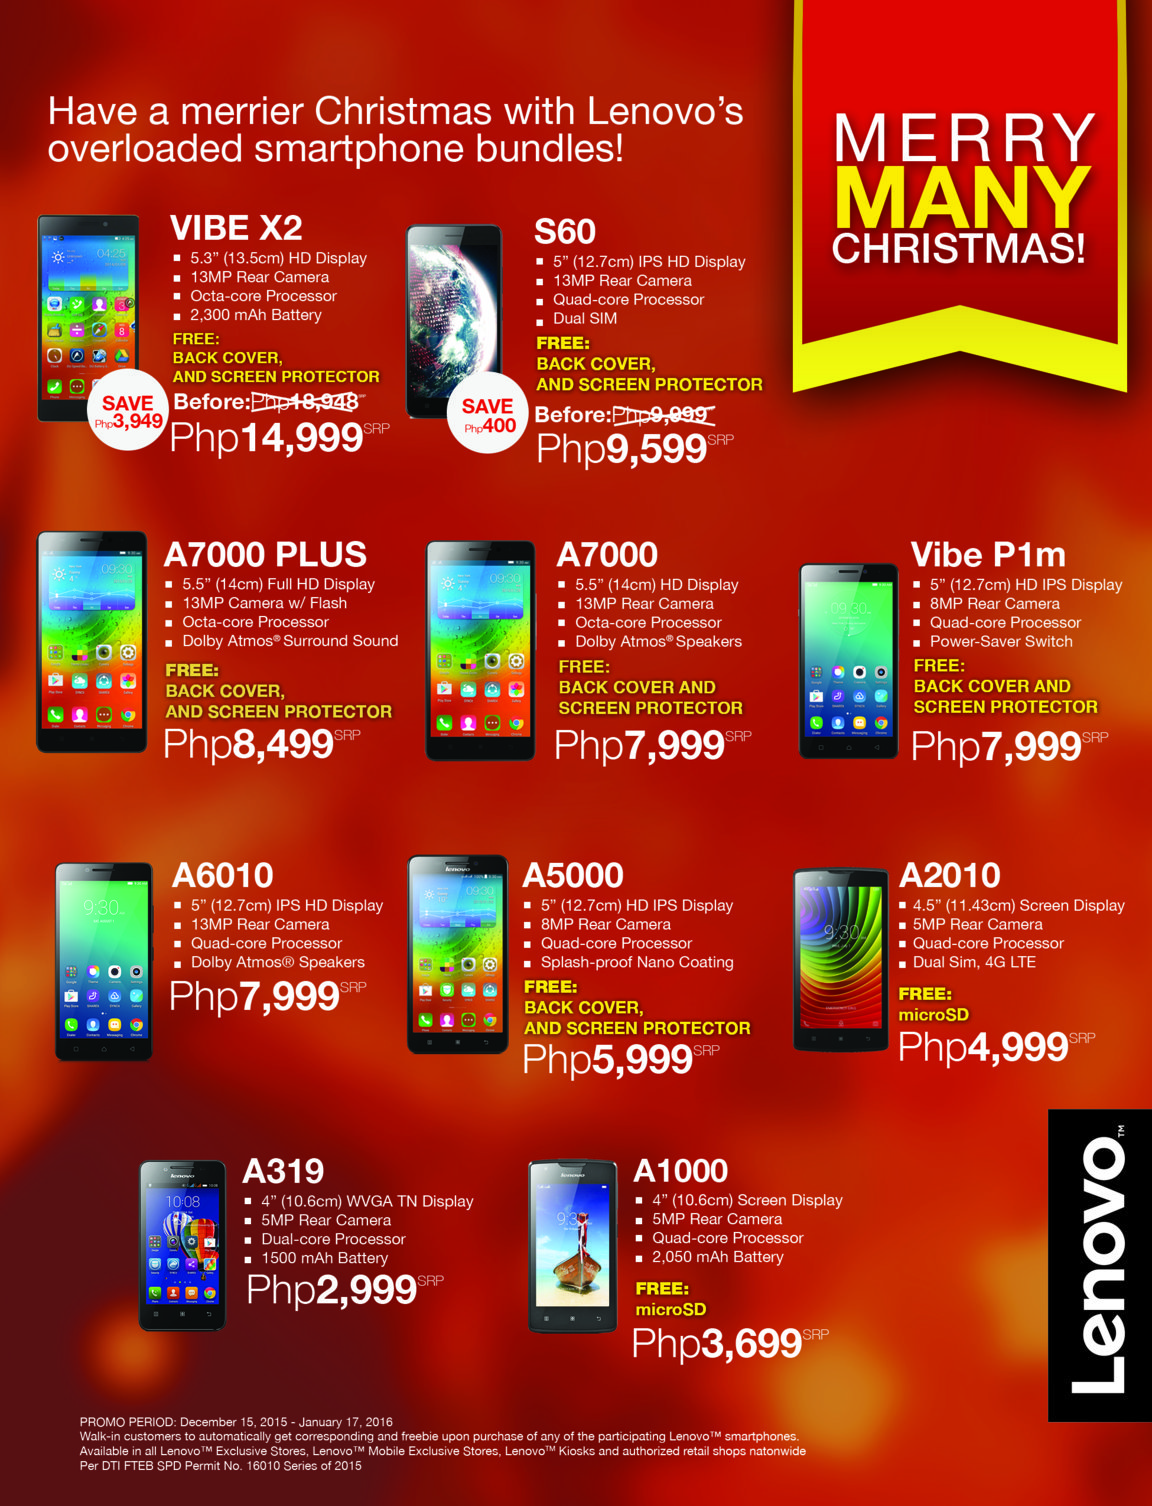 Lenovo's Merry Many Christmas Promo